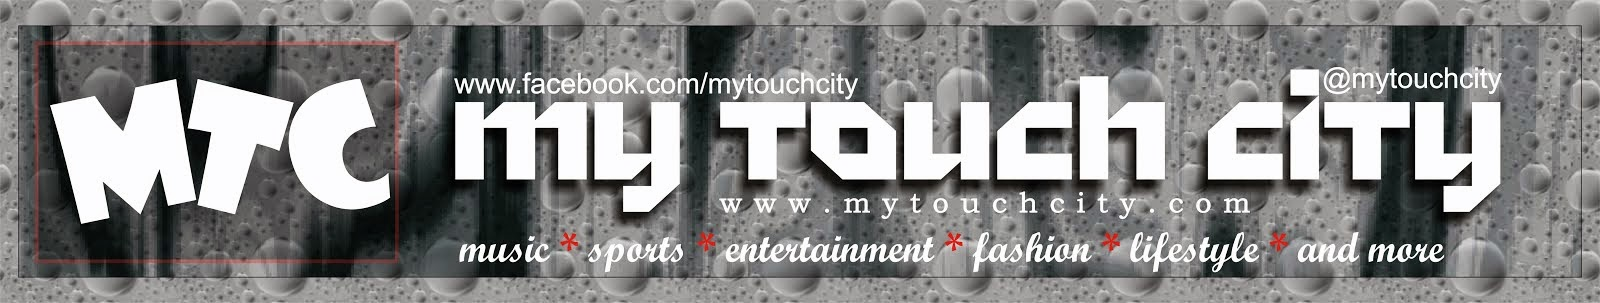 Welcome To MyTouch City Blog